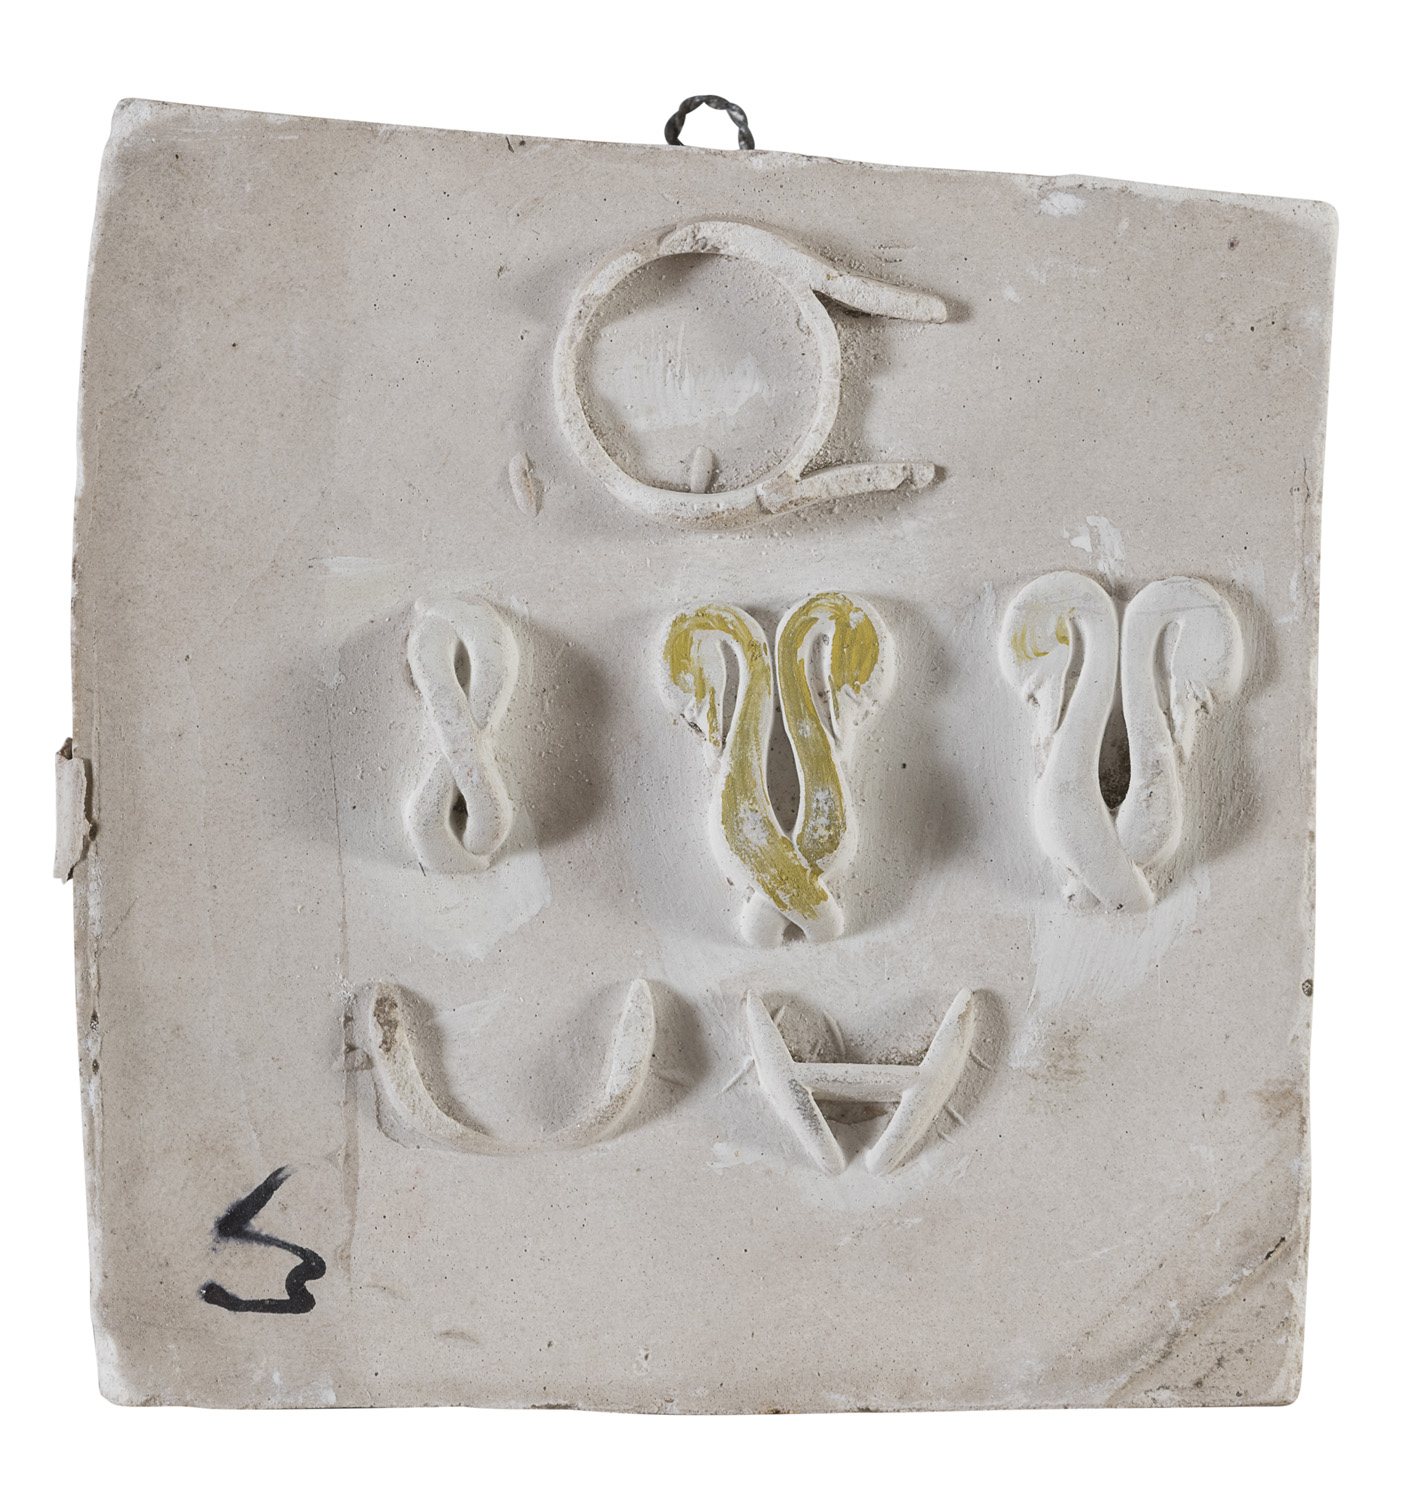 TWO MOLDS BY GIULIO ZANCOLLA 1940's - Image 2 of 2